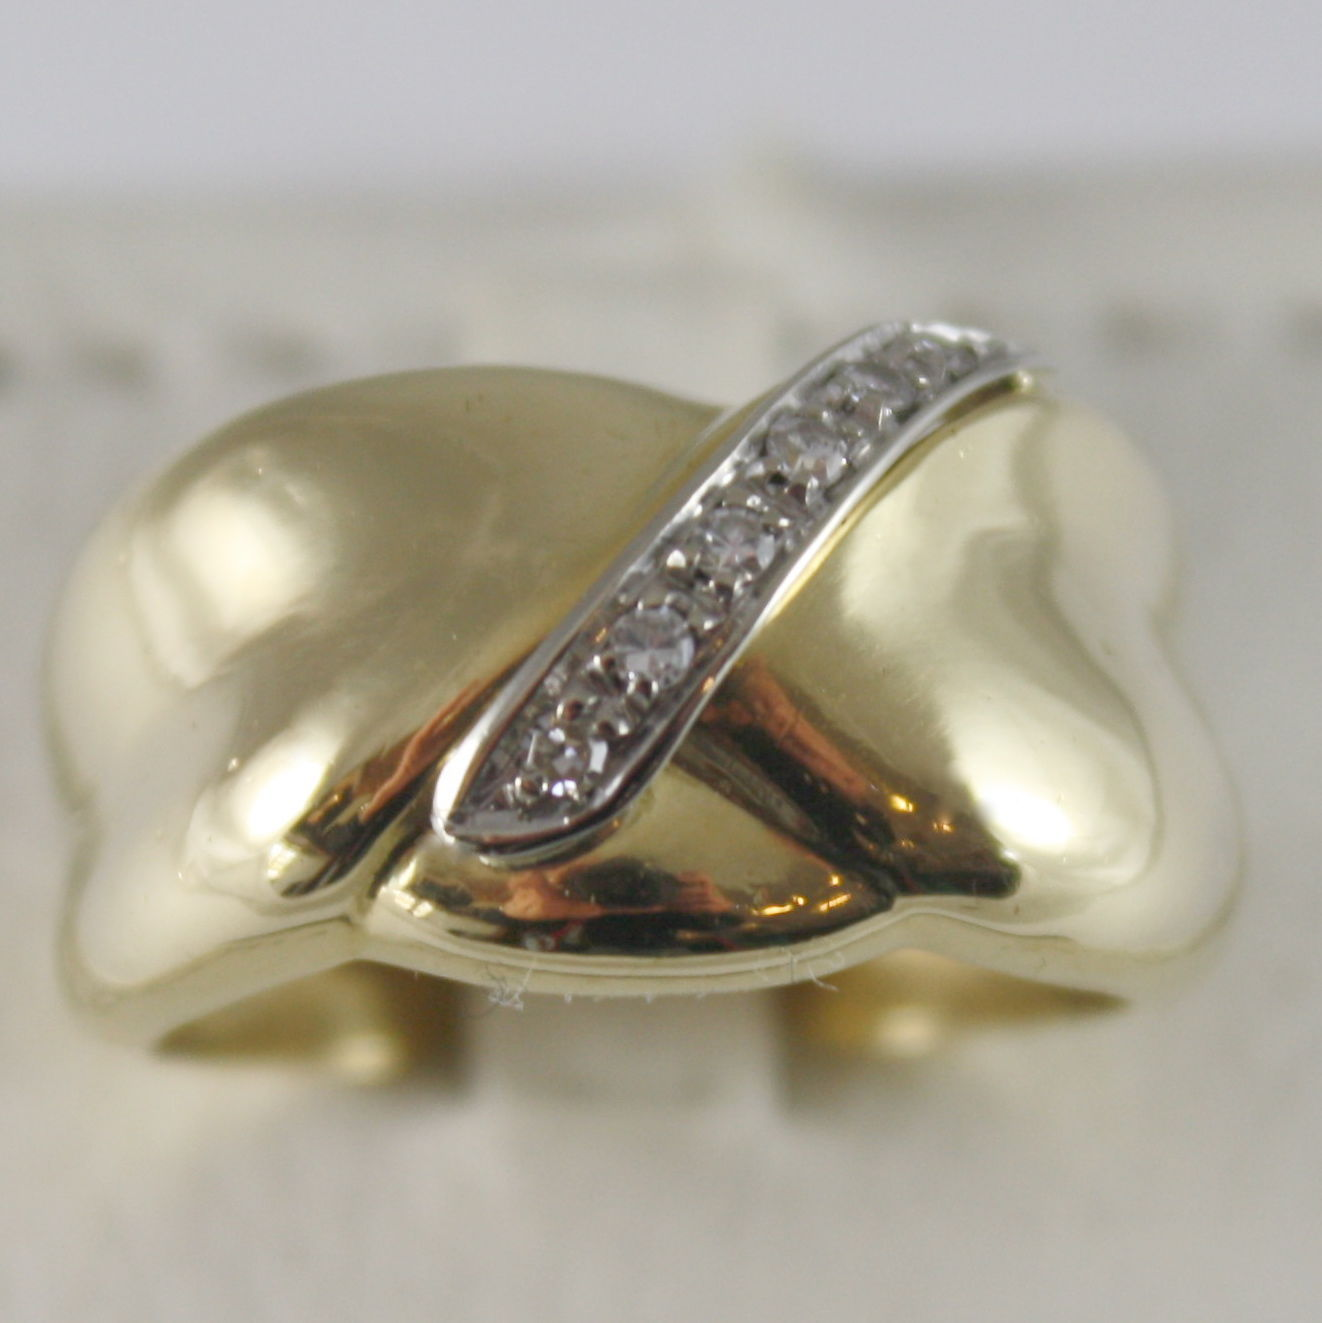 SOLID 18K YELLOW GOLD ETERNITY BAND RING WITH DIAMONDS CT 0.09 MADE IN ITALY